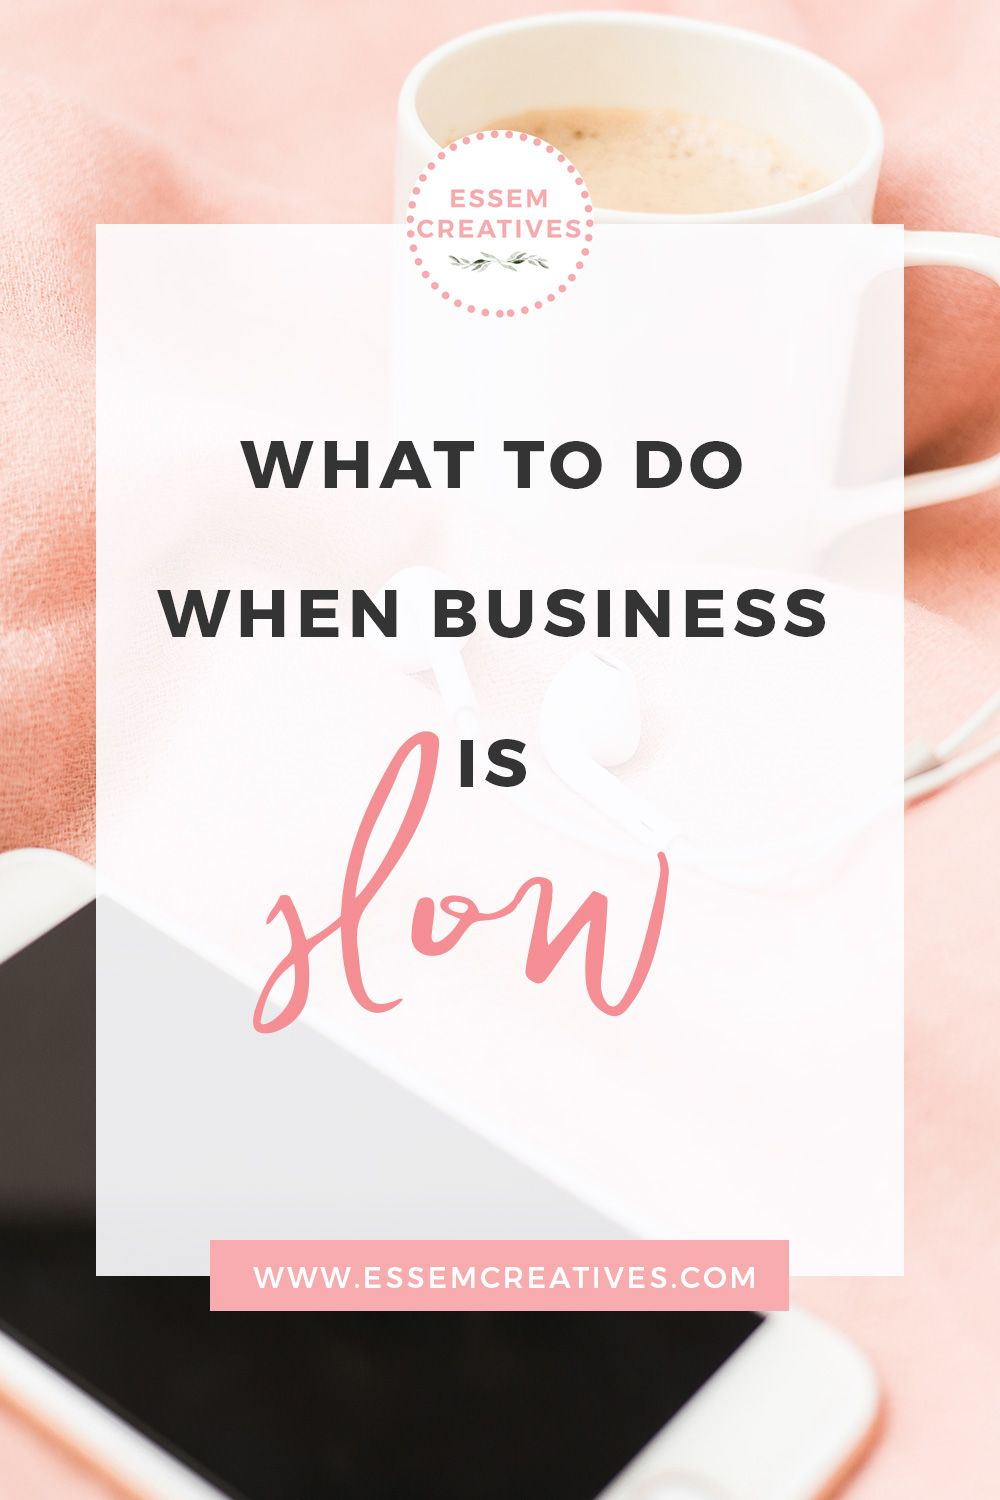 What to Do When Business is Slow or is Going Down